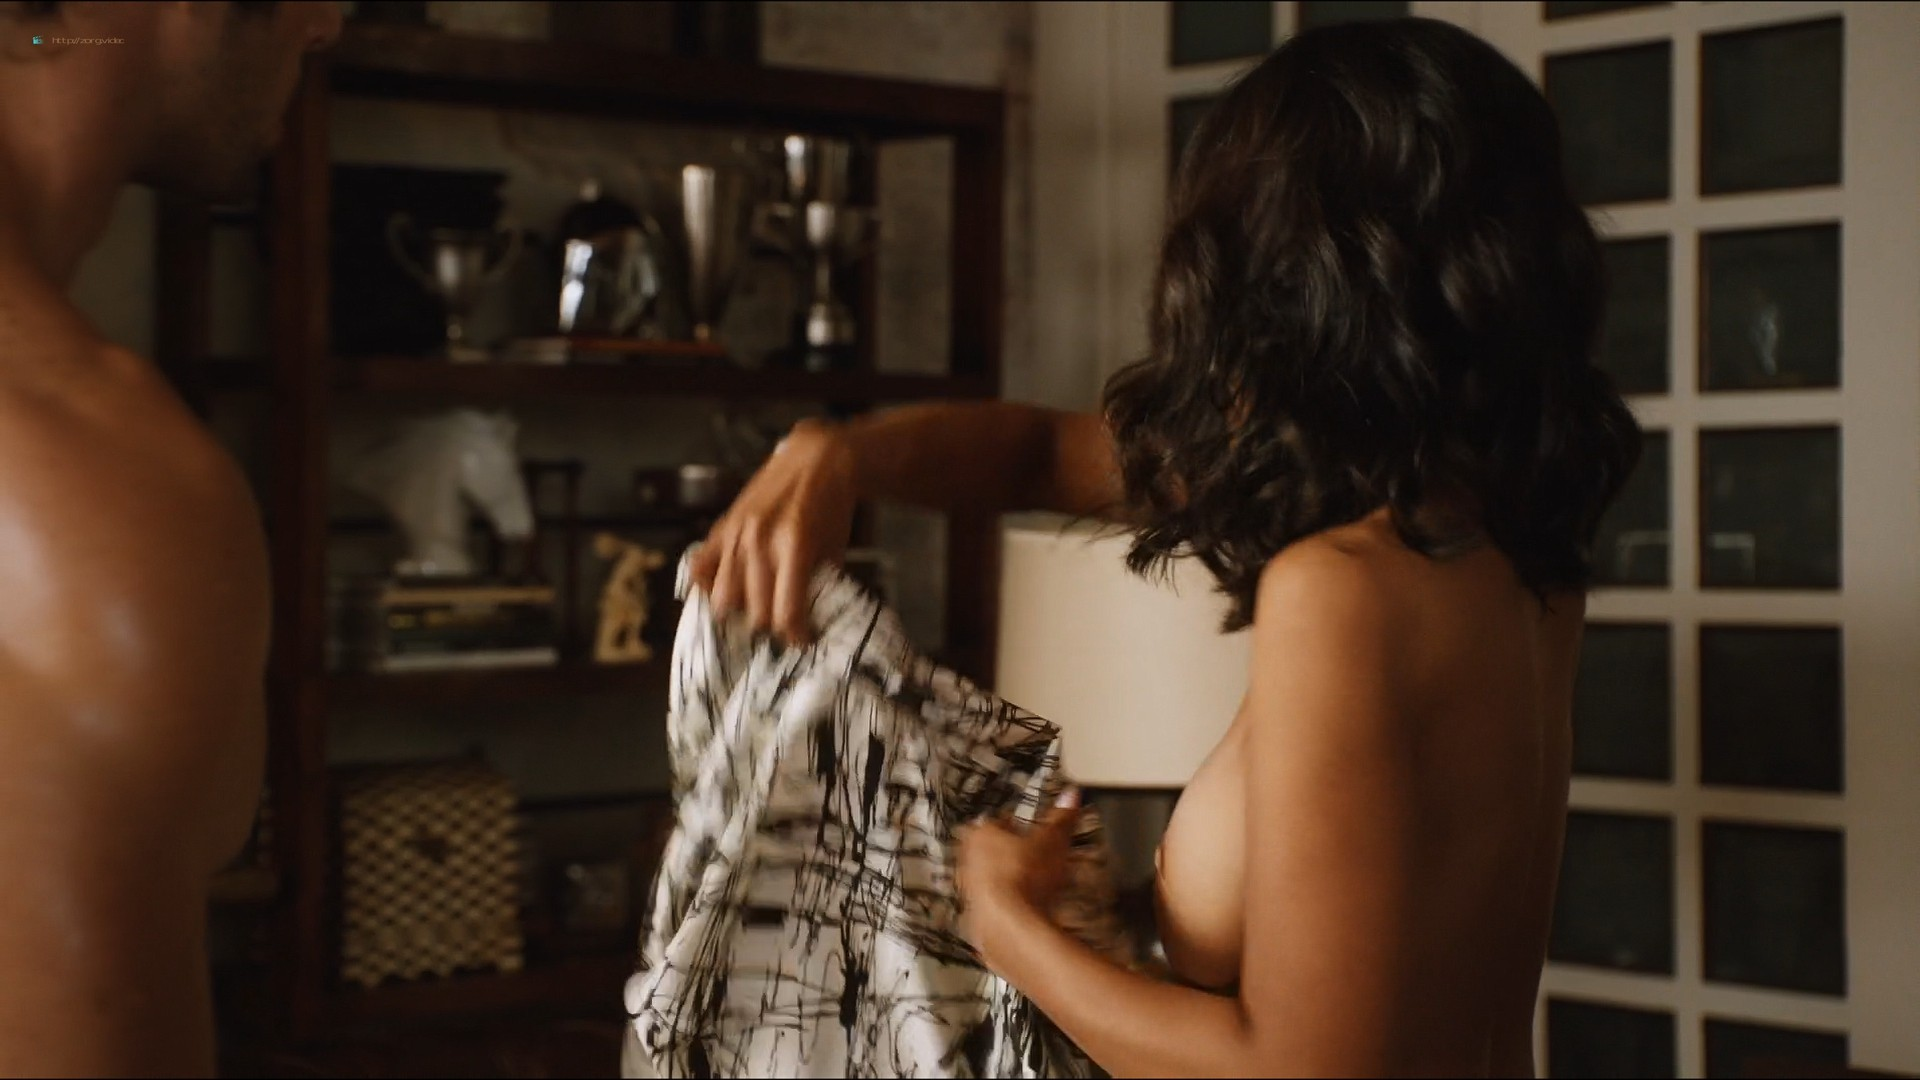 Sharon Leal nude and lot of sex others nude too - Addicted (2014) HD 1080p (8)